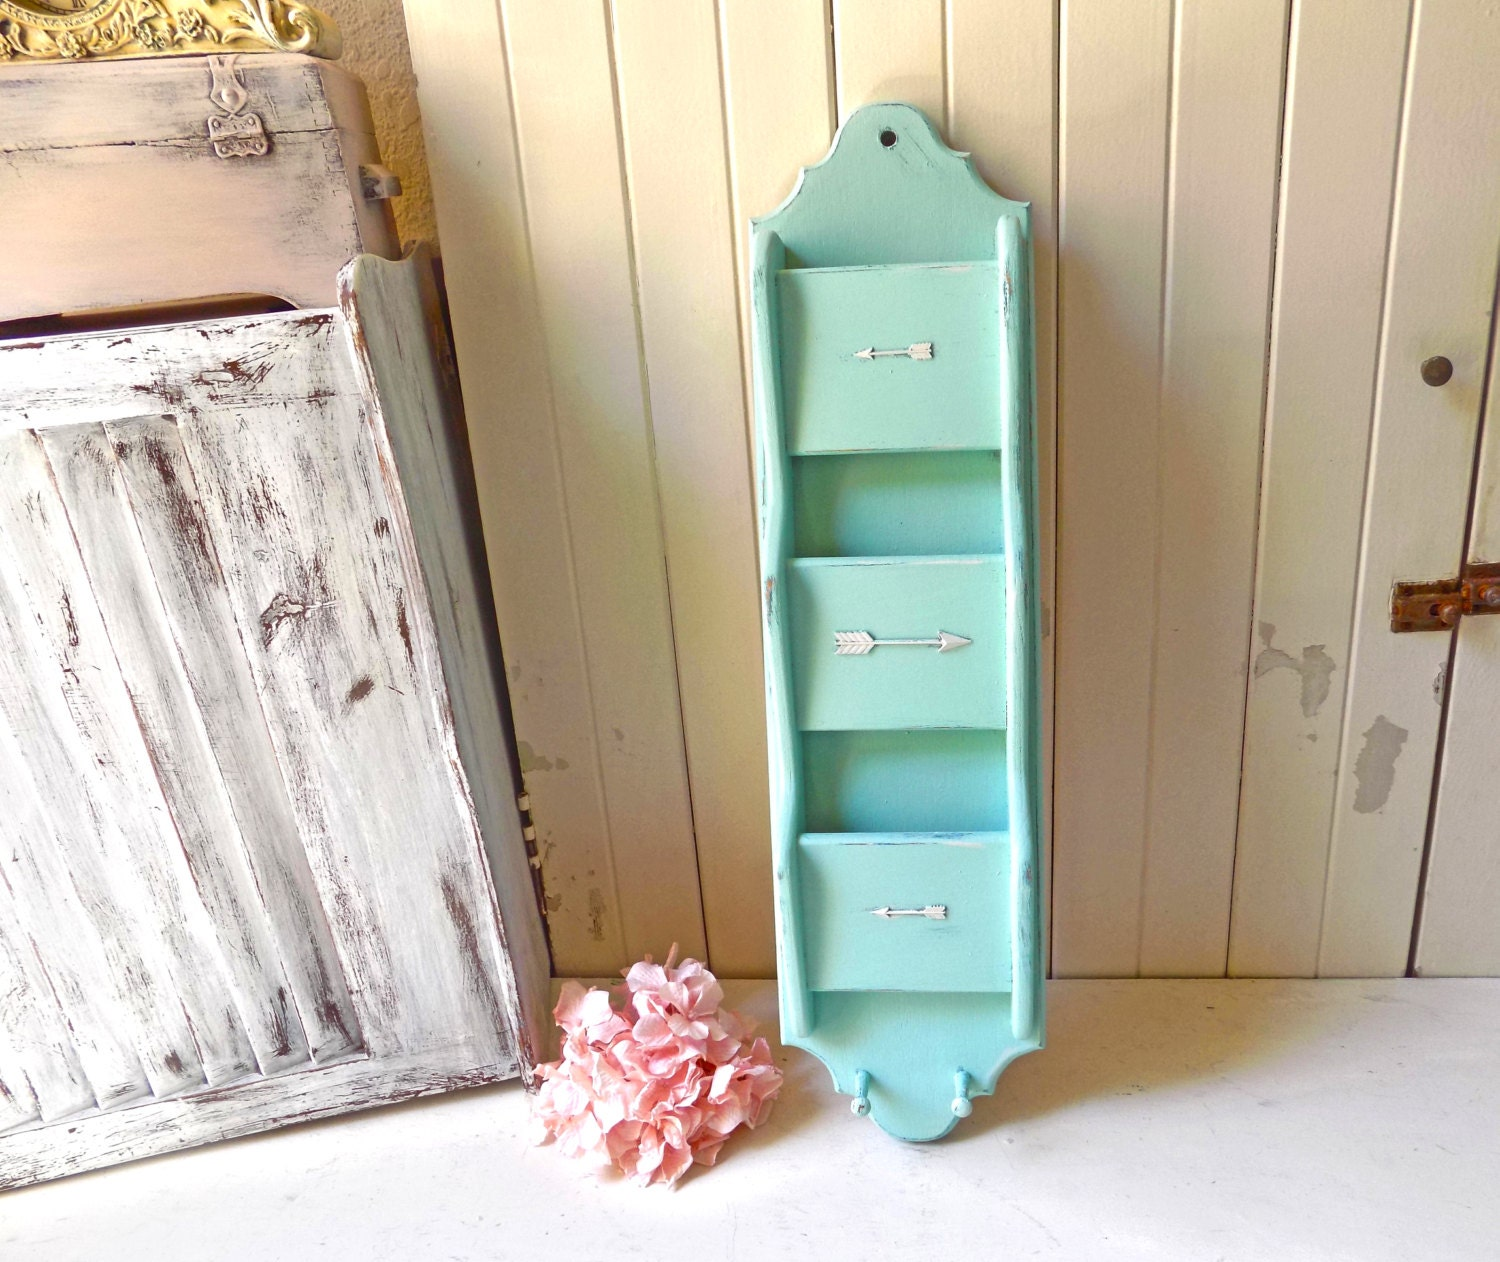 aqua mint vintage mail organizer with arrow decor teal distressed shabby chic letter holder bill holder mail organizer office decor chic mint teal office